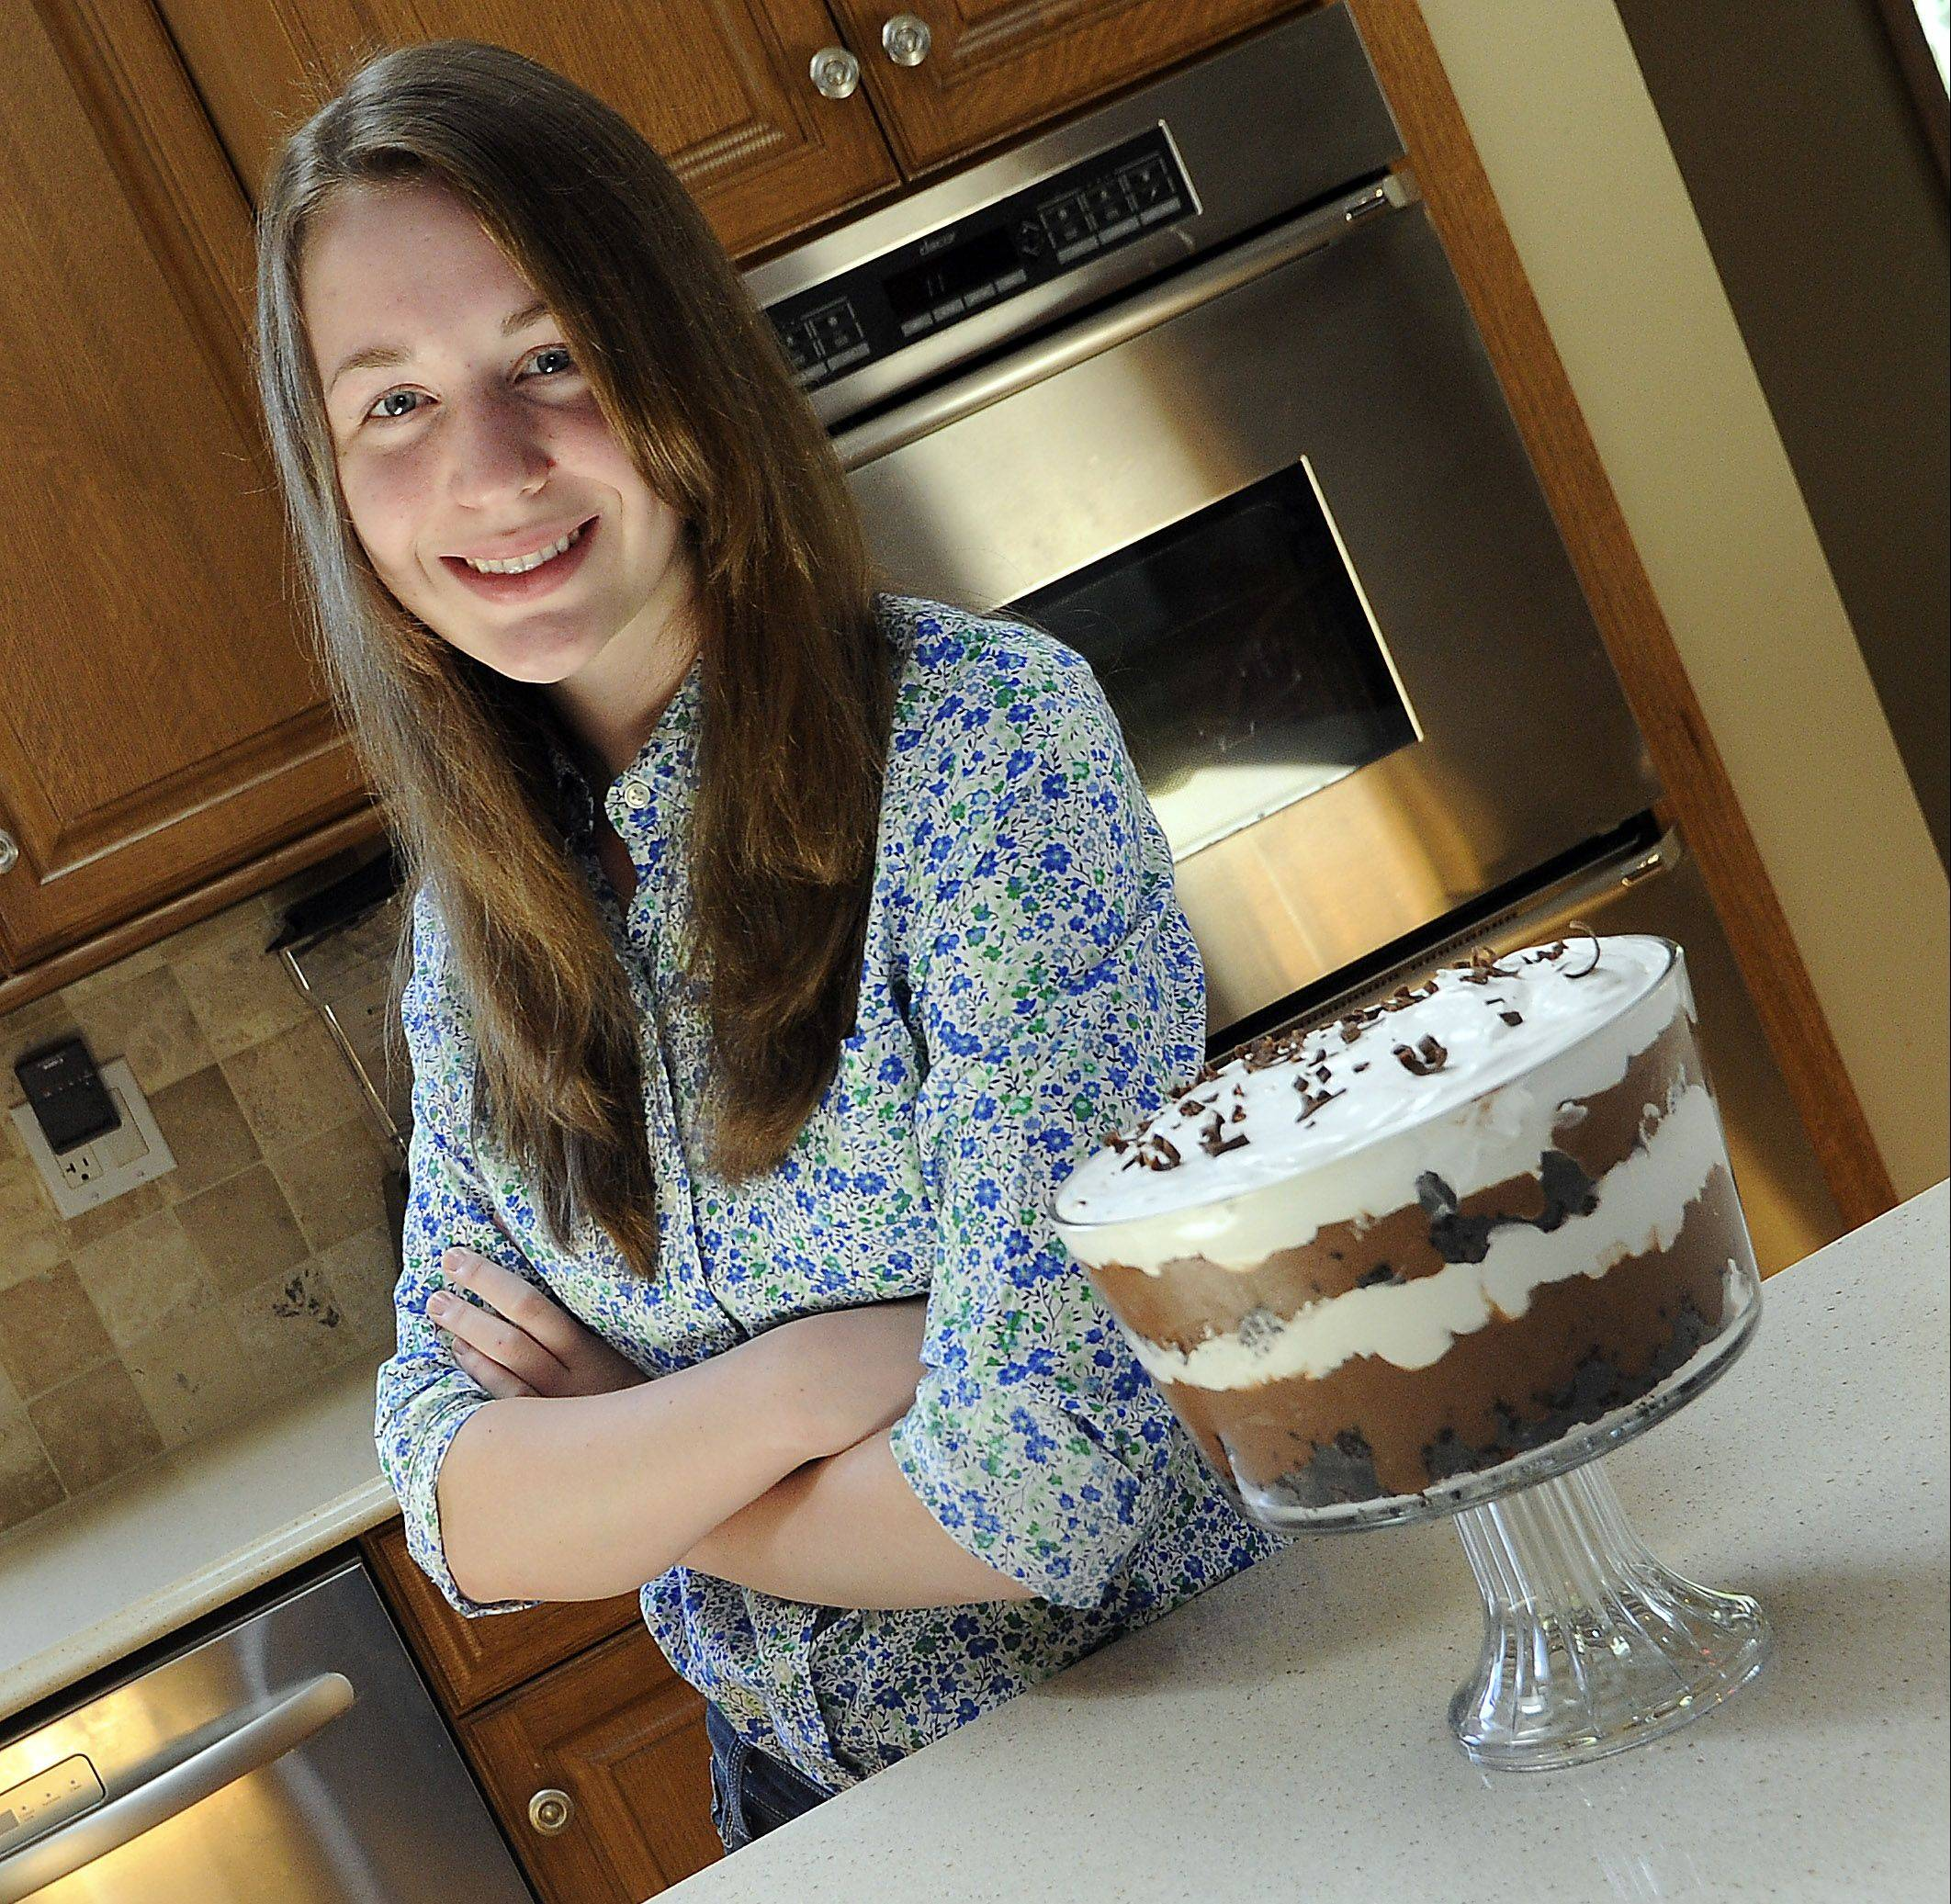 Cook of the Week: Young baker knows way to family's heart